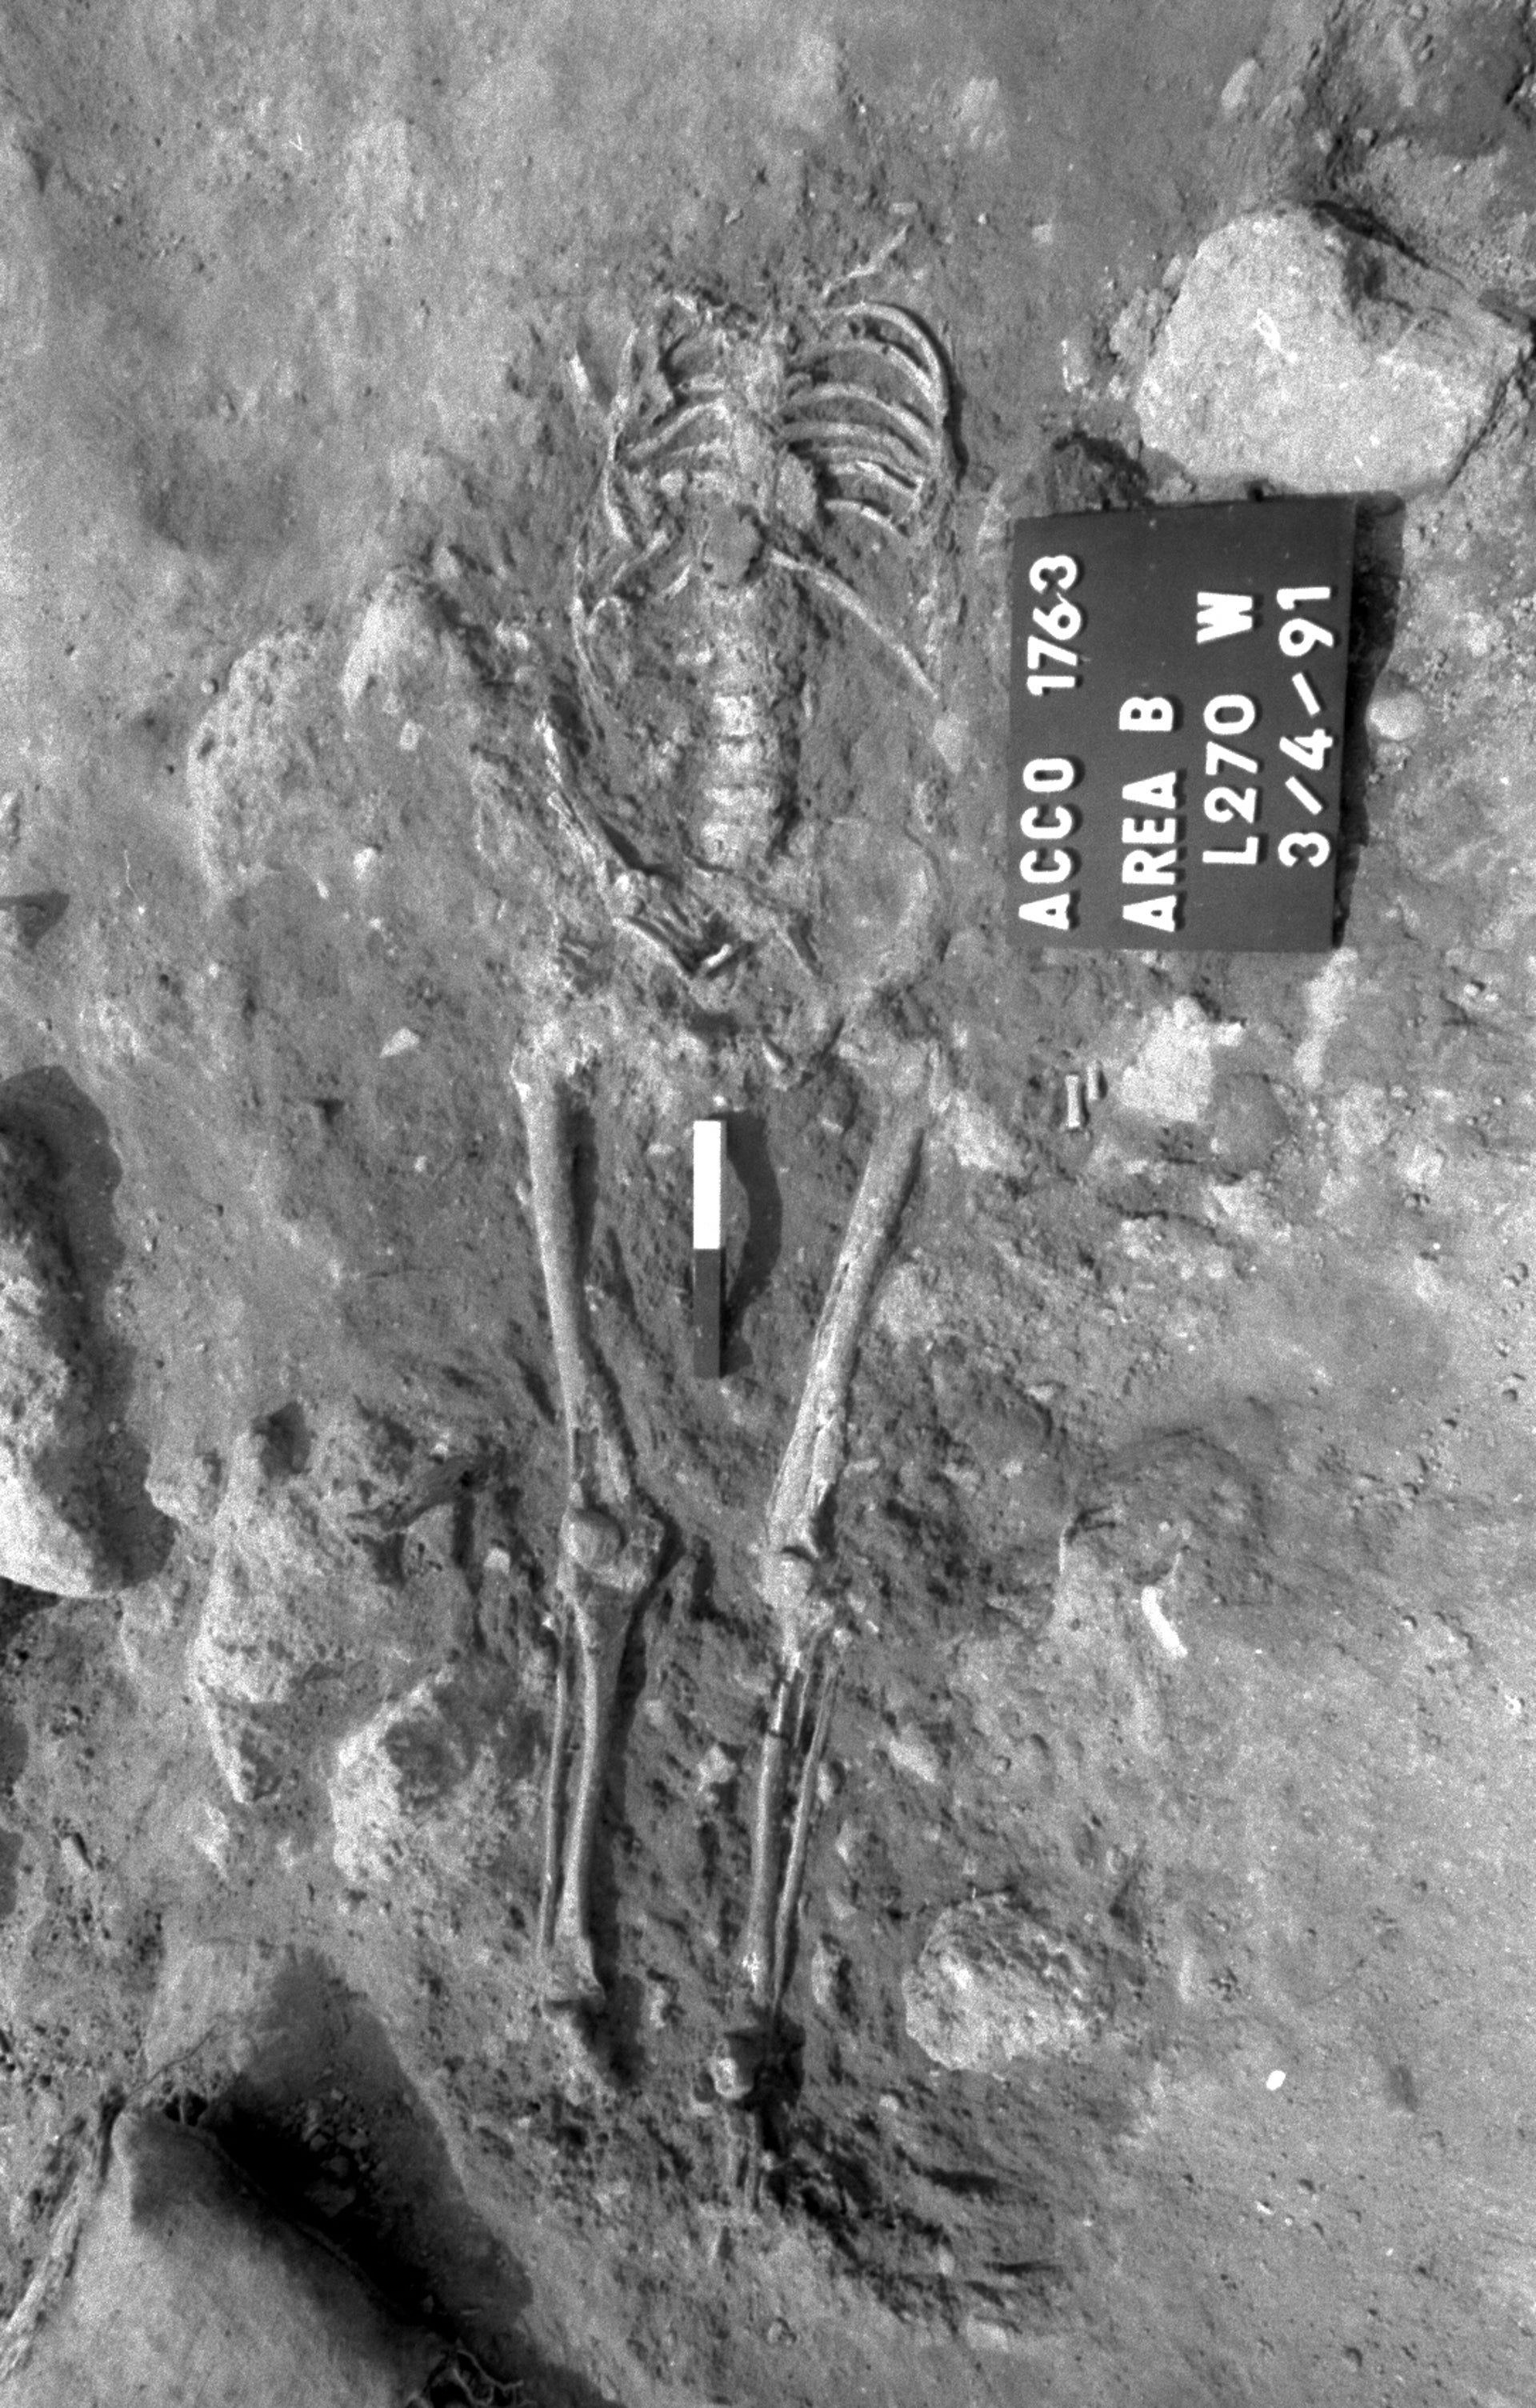 The body of a French soldier in Napoleon's invasion force, decapitated by Turkish forces in 1799, in Acre, Israel.